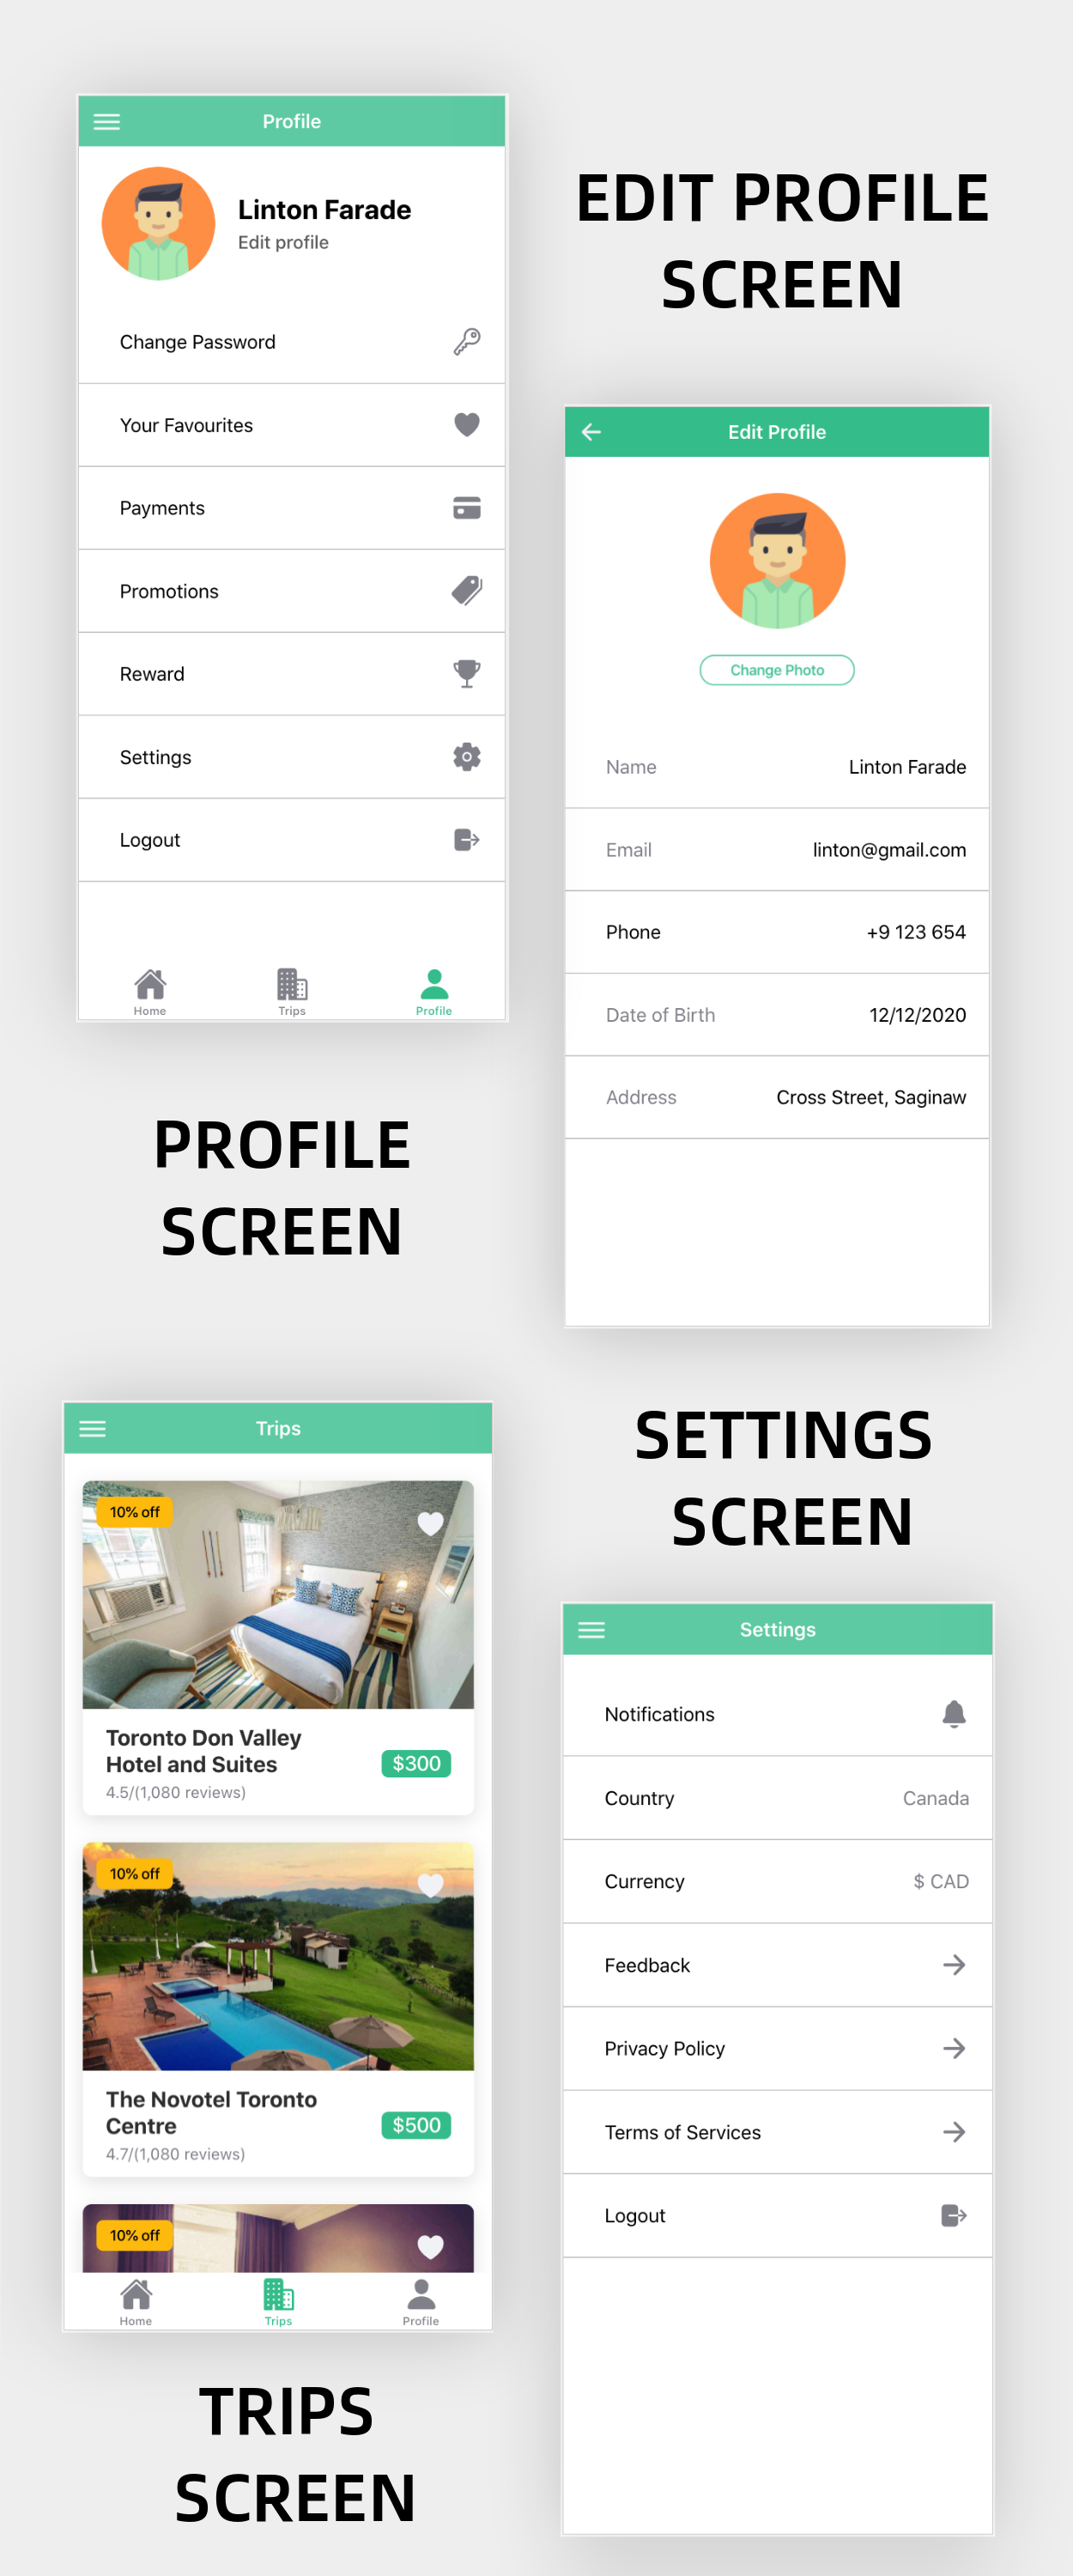 Hillside - A Hotel Booking Theme UI App By Ionic 5 Angular 9 (Latest) - 9